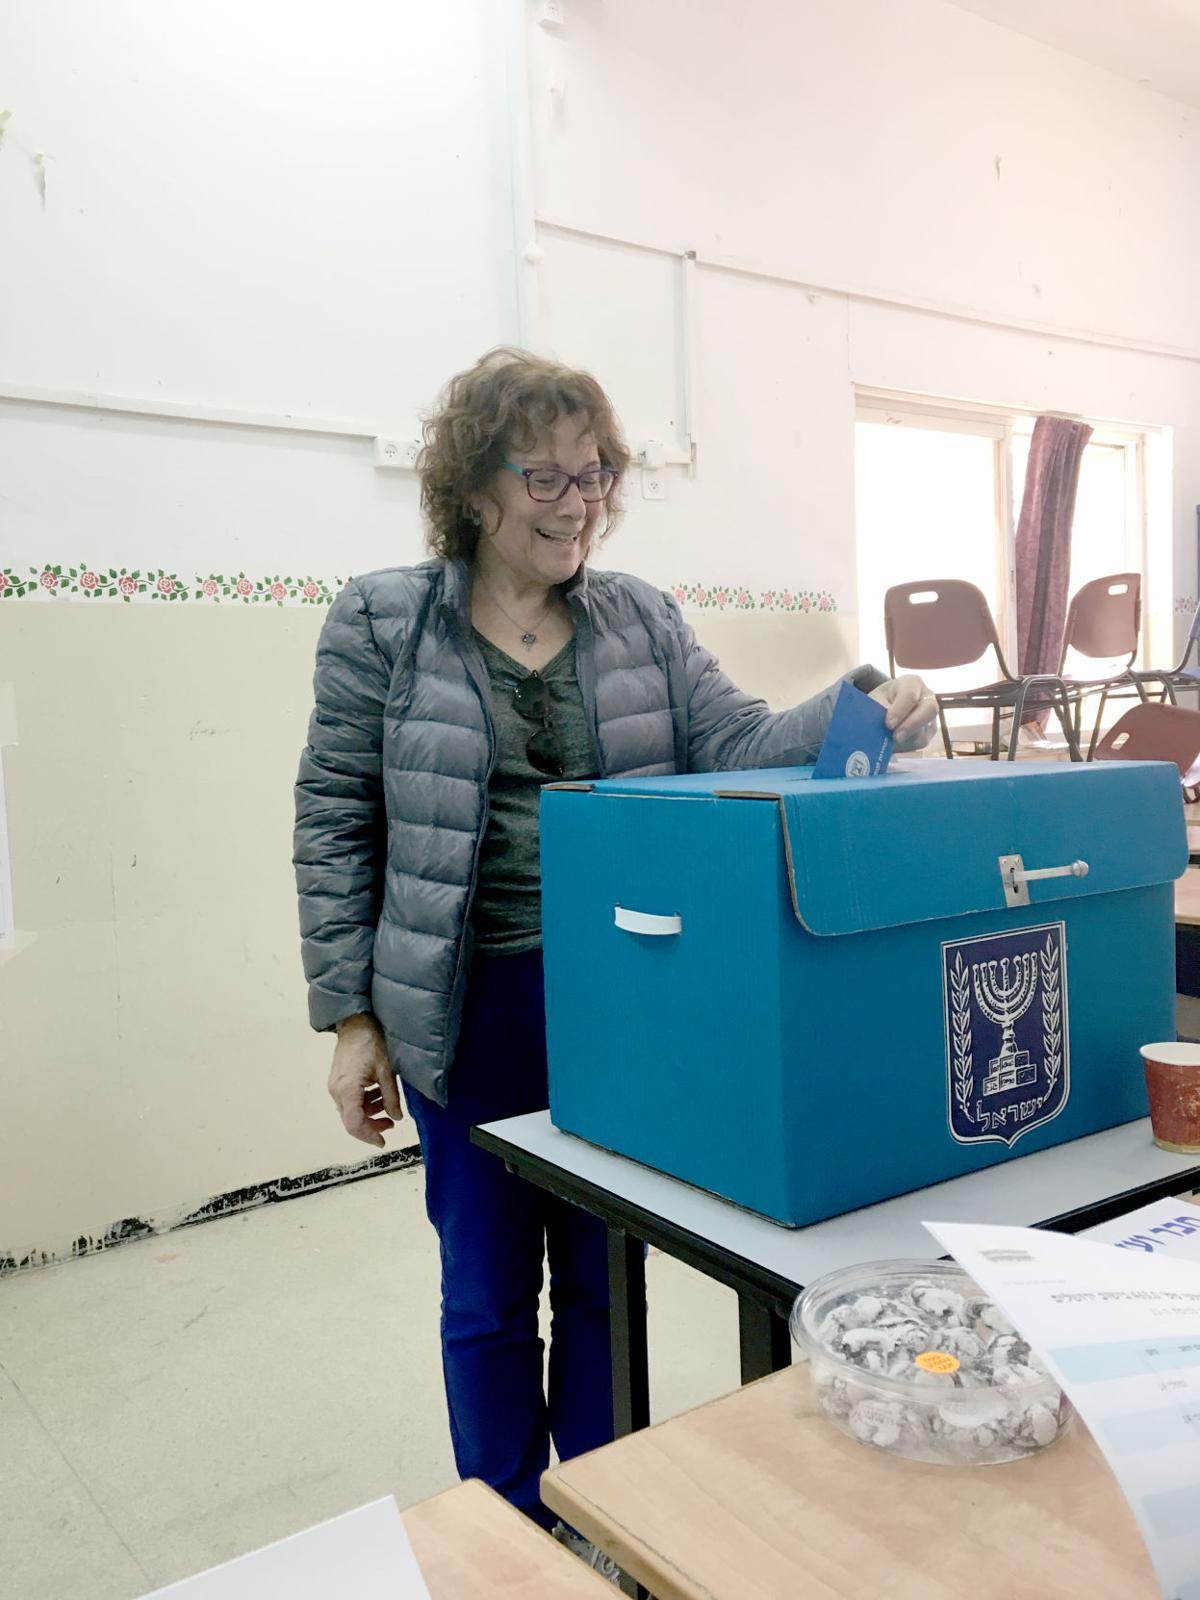 Julie Auerbach places her envelope and ballot in the ballot box.